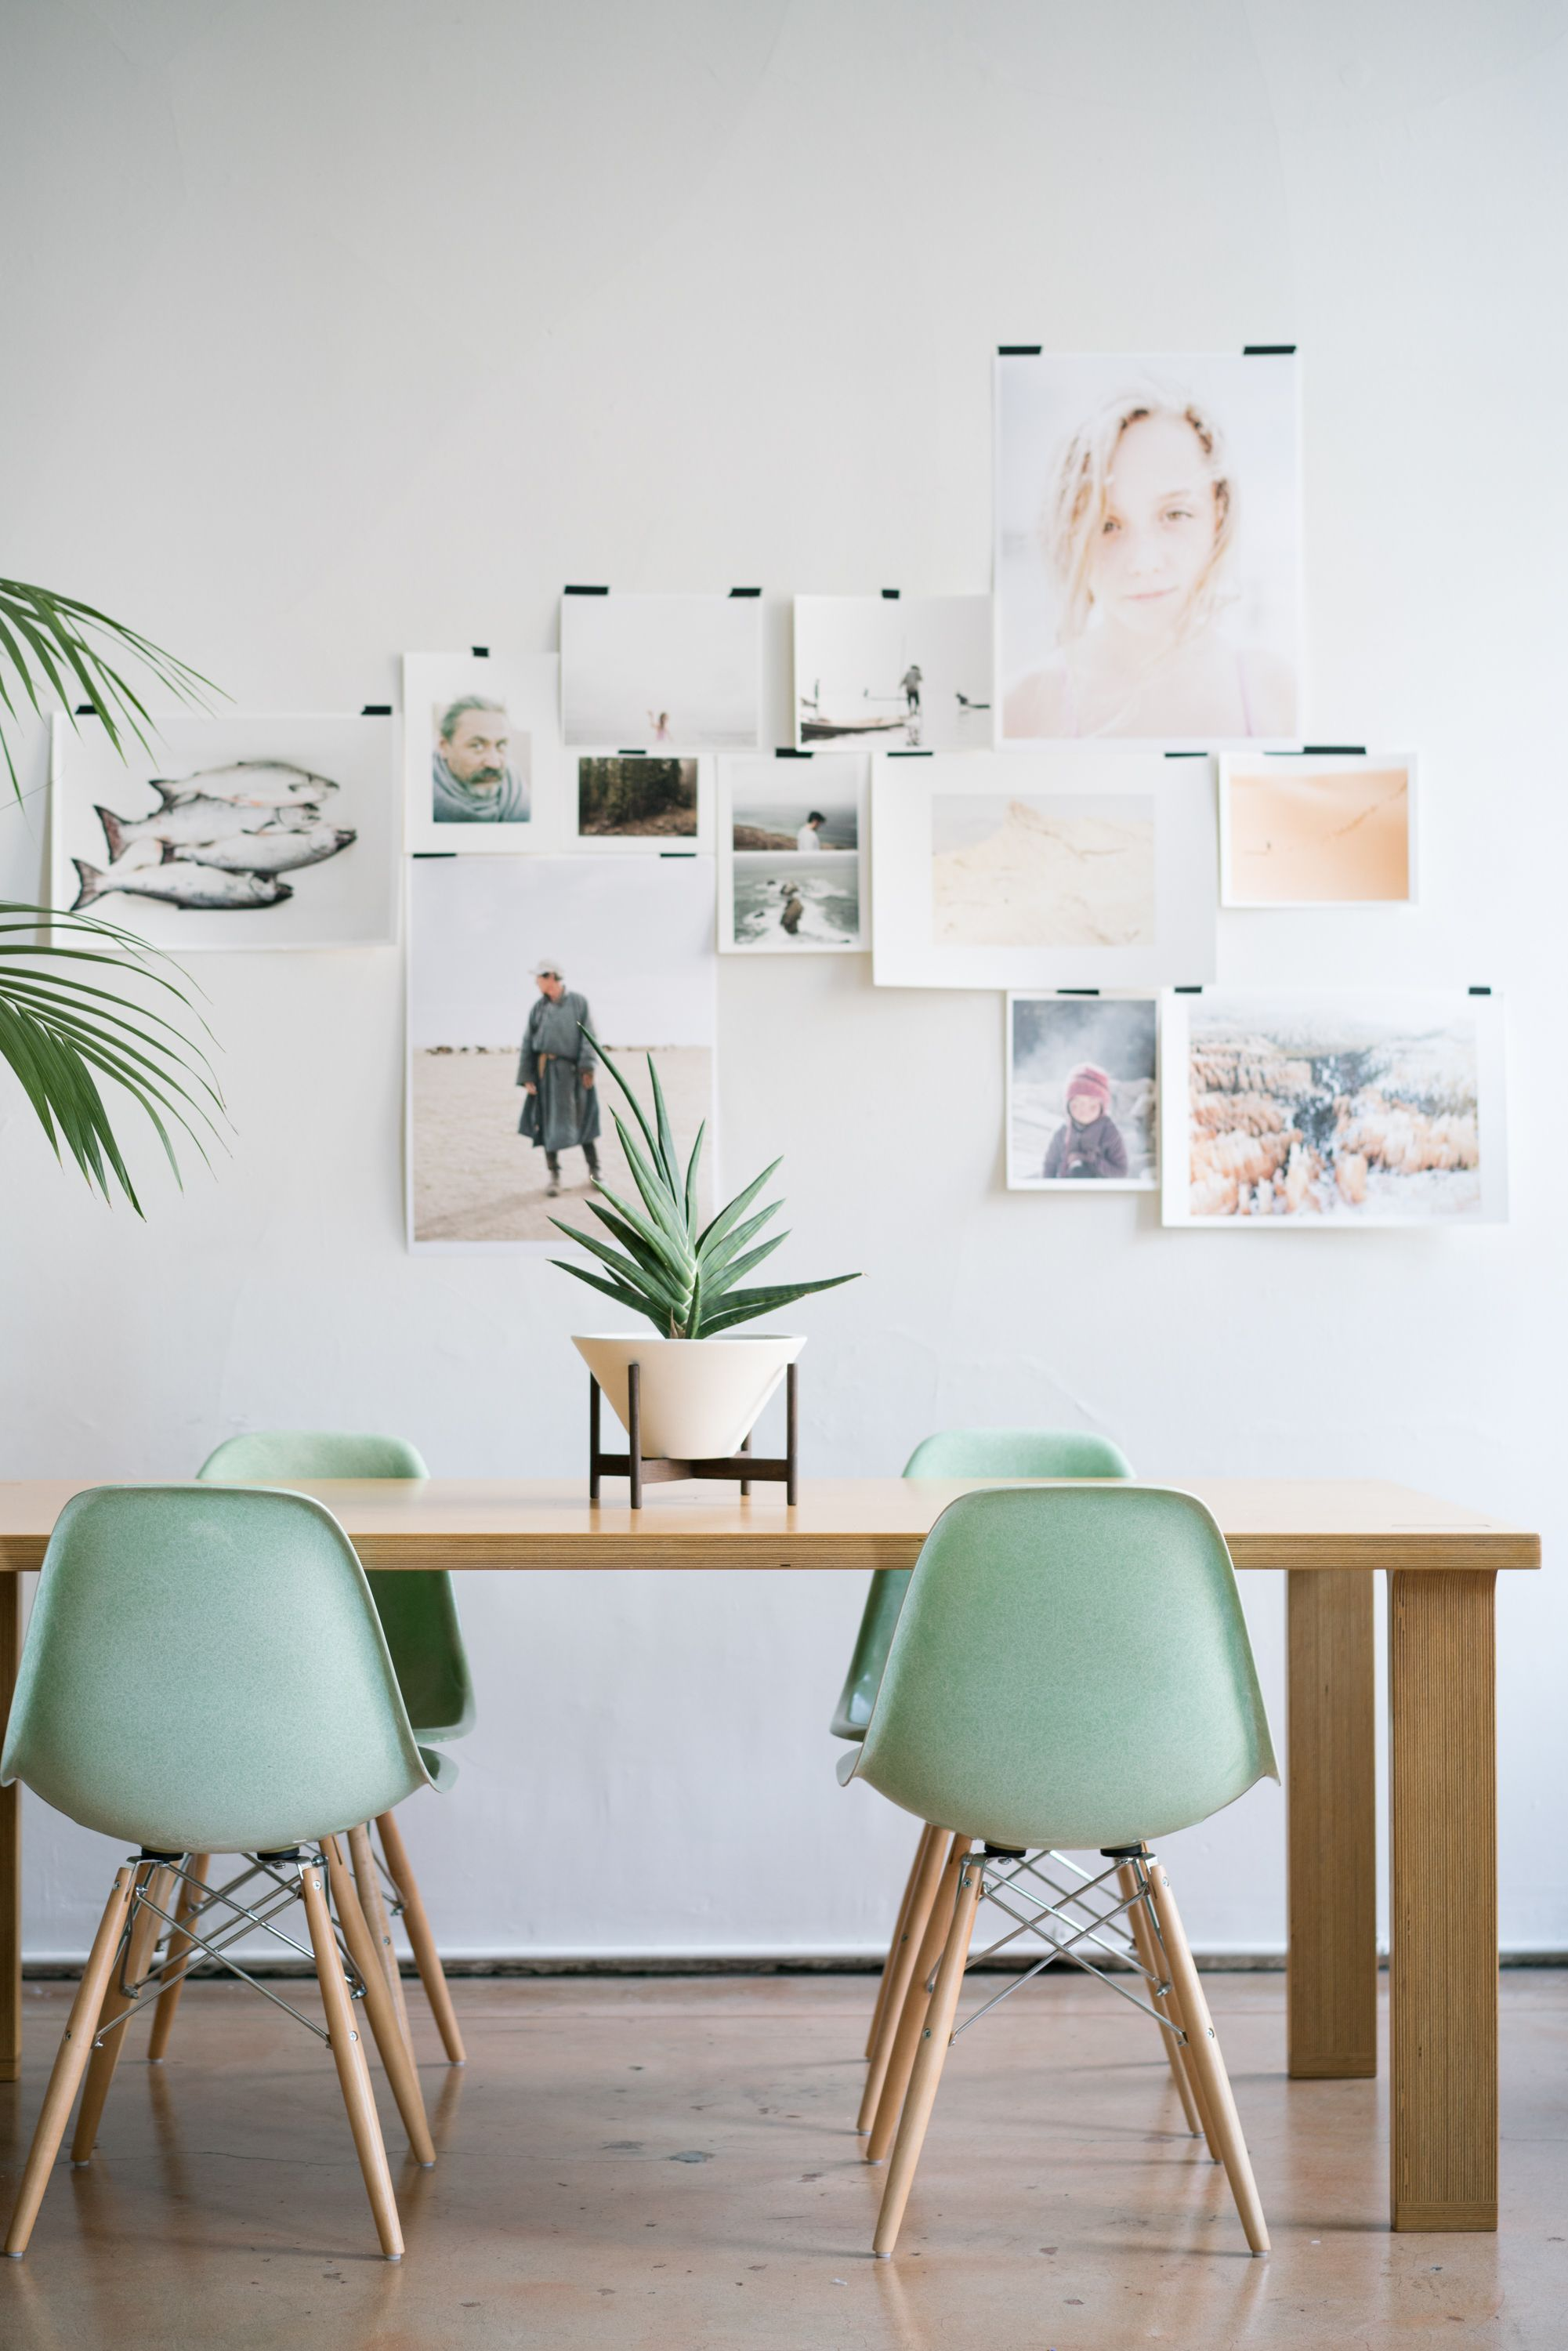 Sedia Eames Verde Modernica Case Study Fiberglass Shell Chairs In Jadeite With Dowel